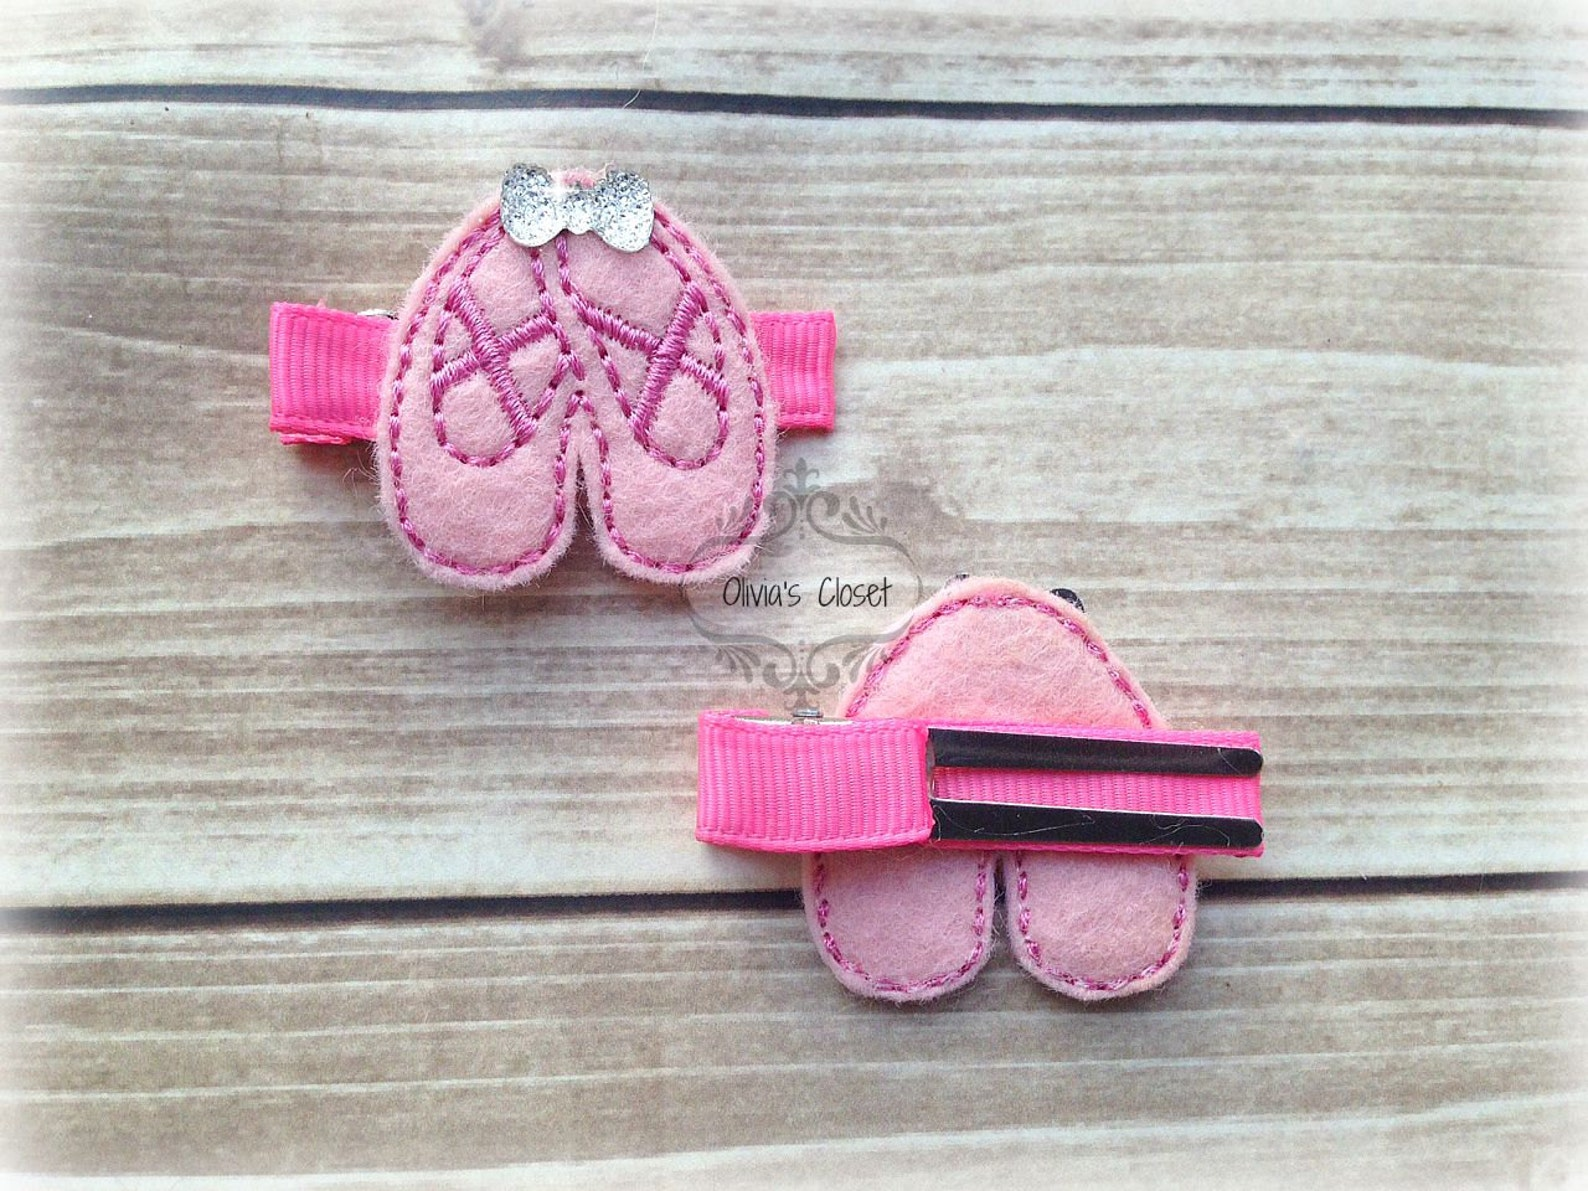 ballet hair clip shoes dancing performance embroidered felt hair clippie tiny rhinestone bows. pick one or two. pick left side o